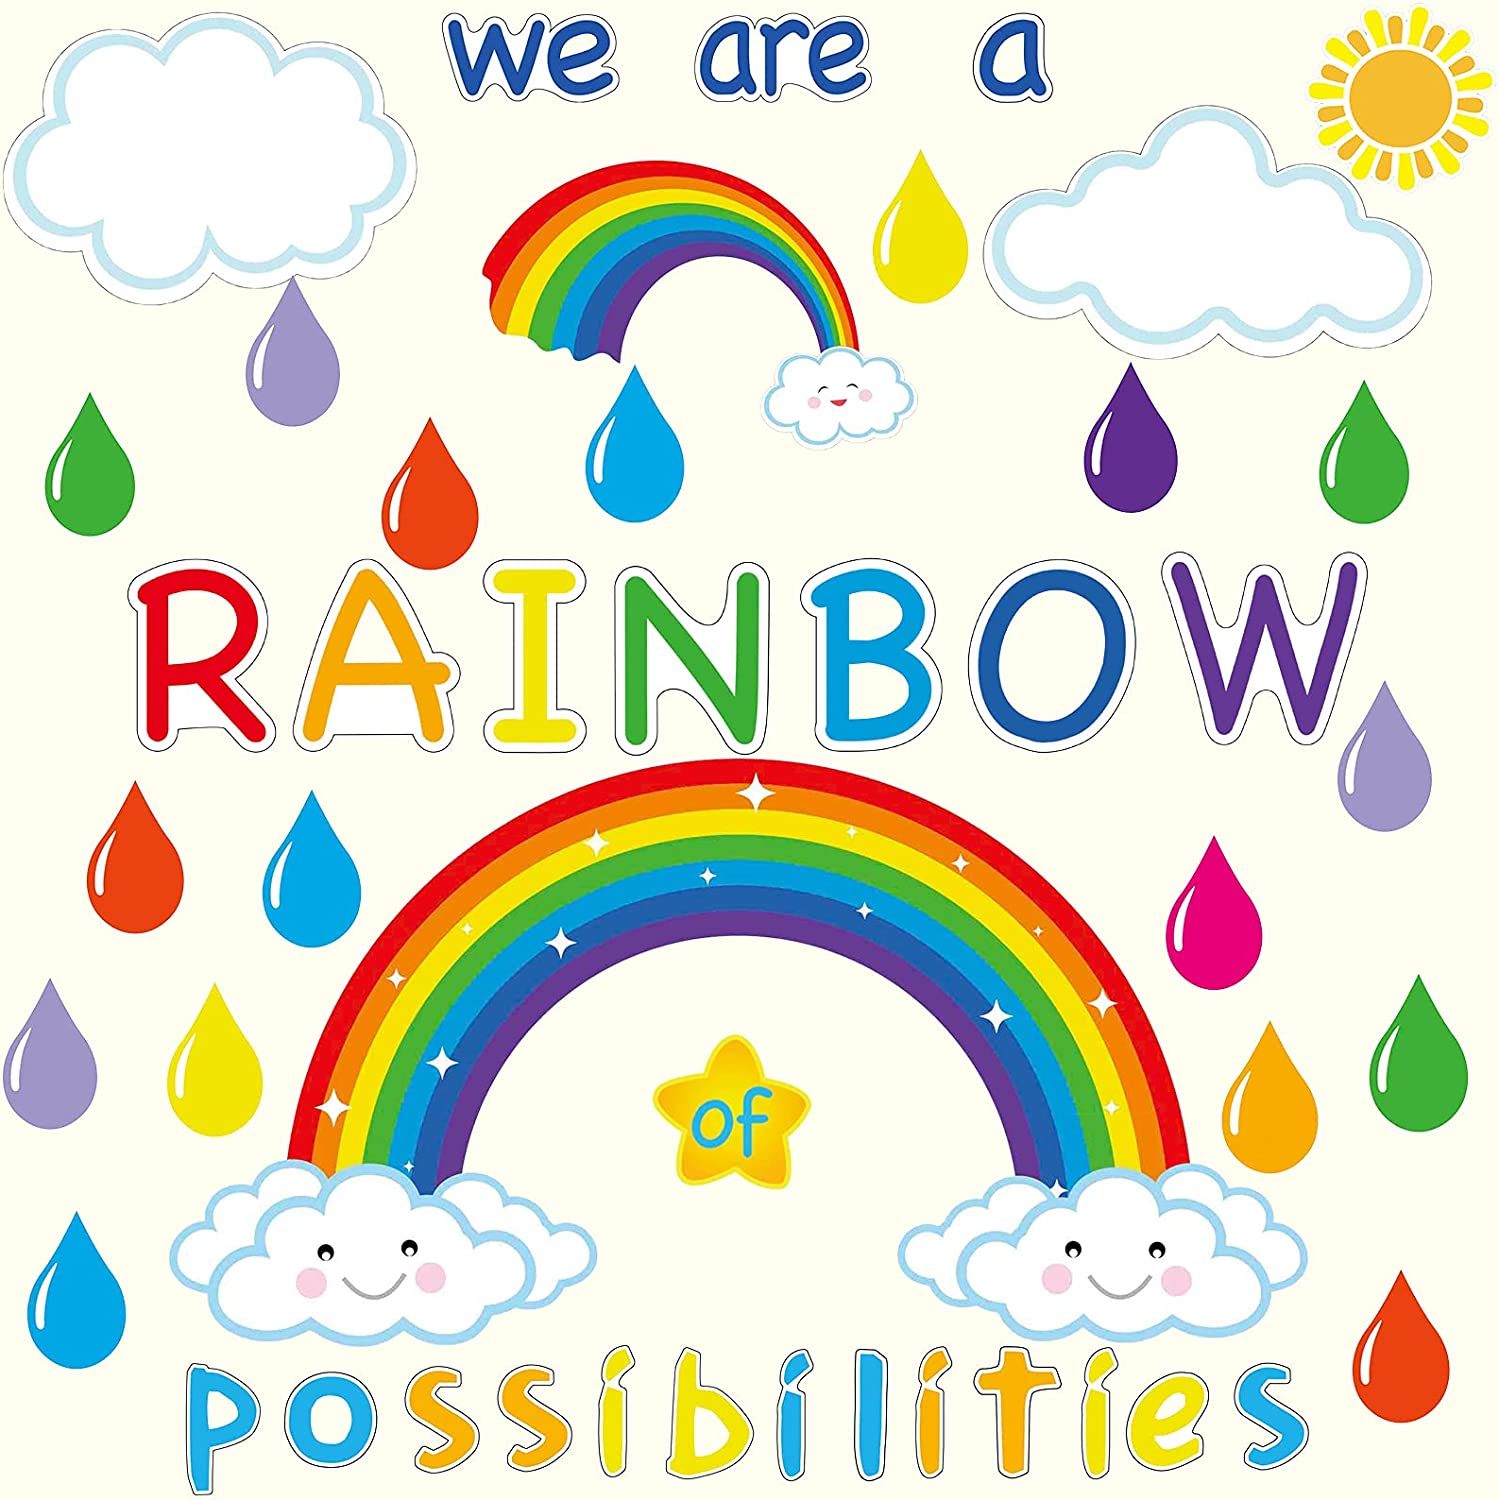 59PCS Motivational Rainbow Bulletin Board Cutouts, Hello Sunshine Inspirational Classroom Decoration We are a Rainbow of Possibilities Accents for School Chalkboards Wall Decor